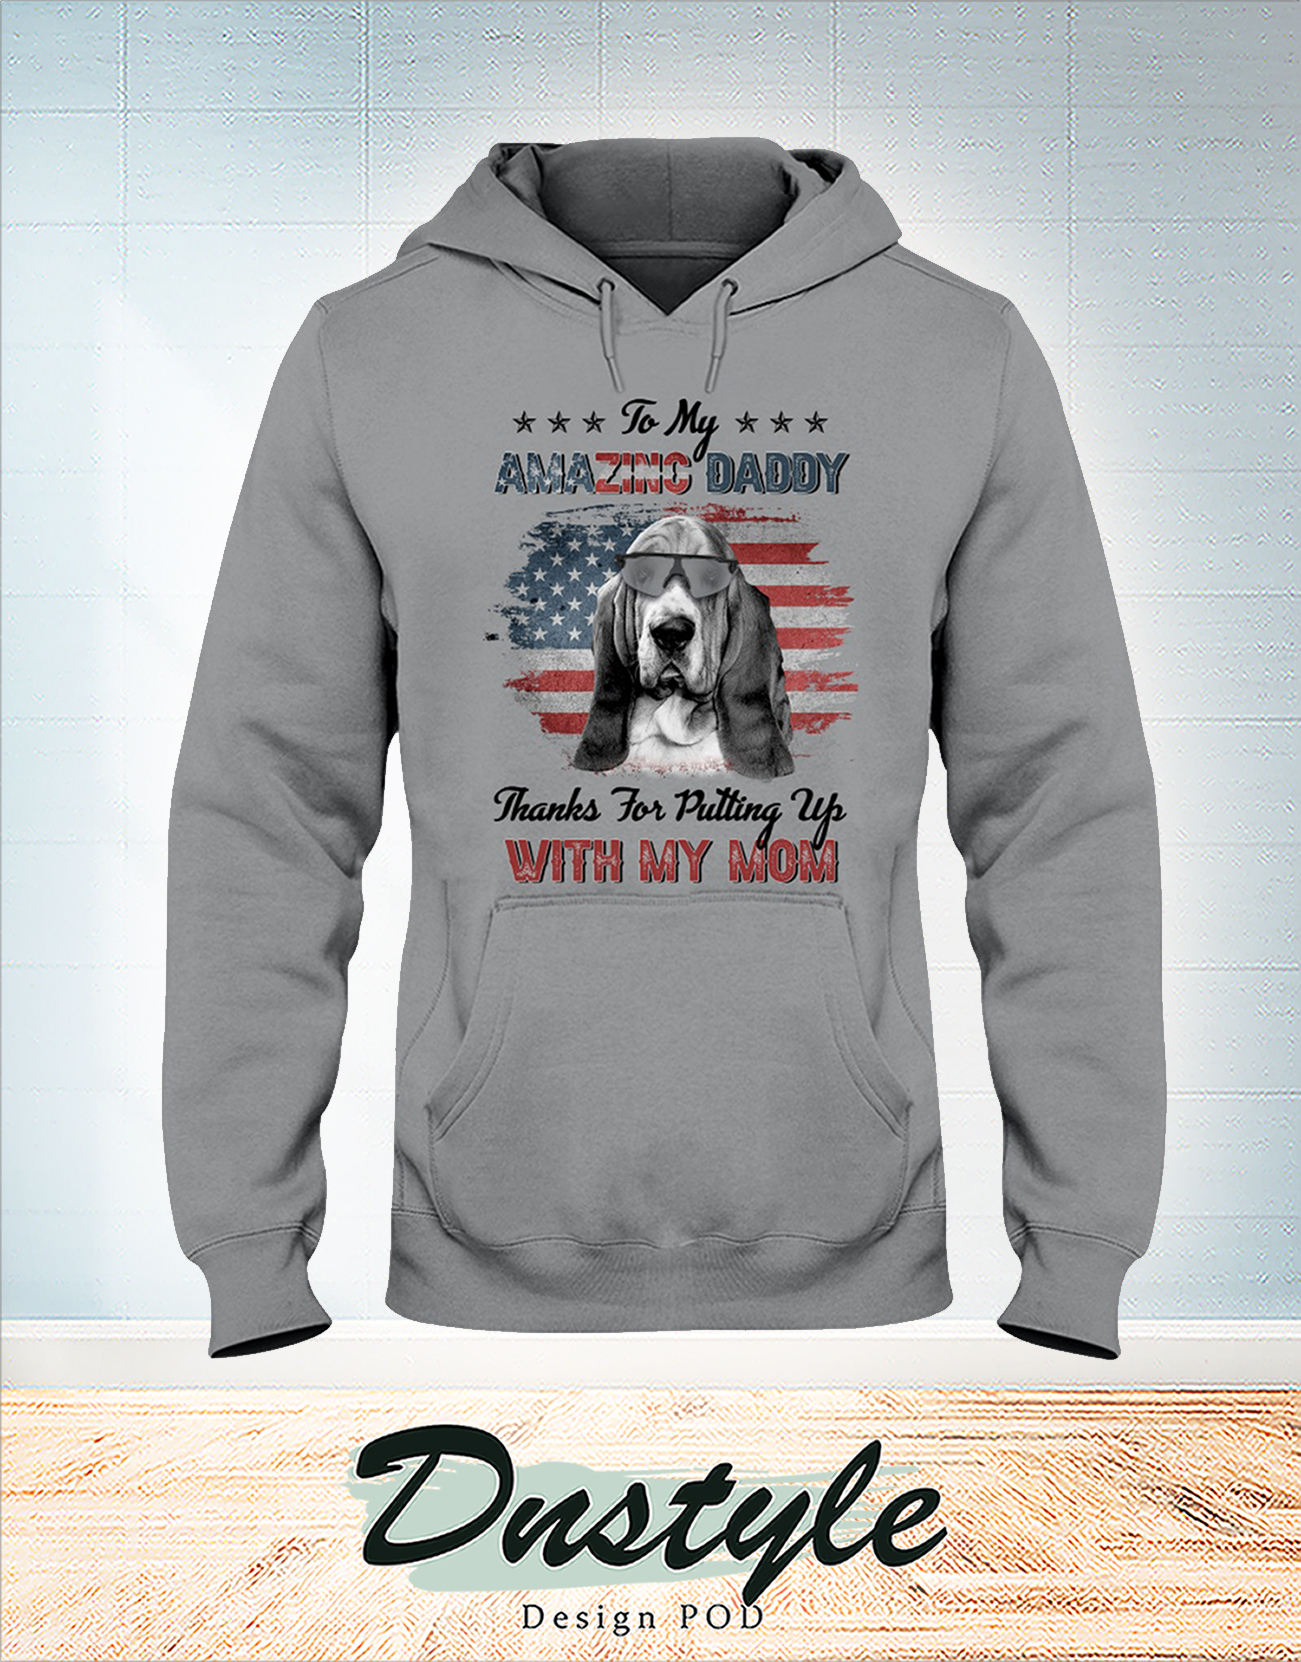 Basset hound to my amazing daddy thanks for putting up with my mom hoodie